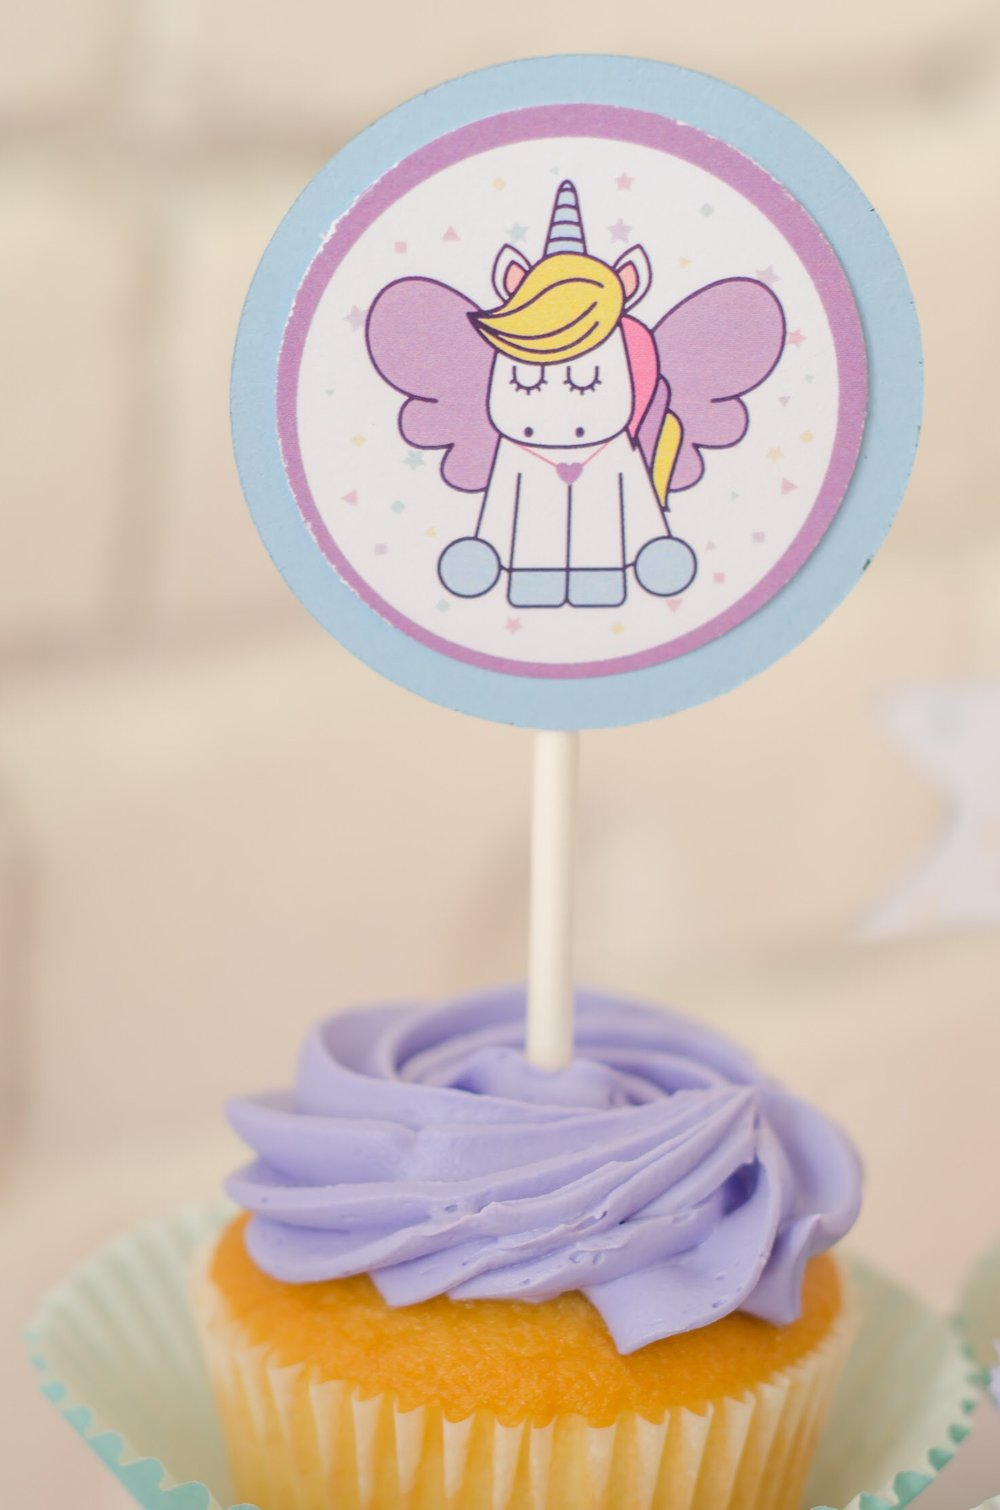 Free printable unicorn cupcake toppers. See more from this adorable unicorn themed birthday party created by Mint Event Design www.minteventdesign.com #unicornparty #birthdayparty #birthdaypartyideas #birthdaydesserts #freeprintables